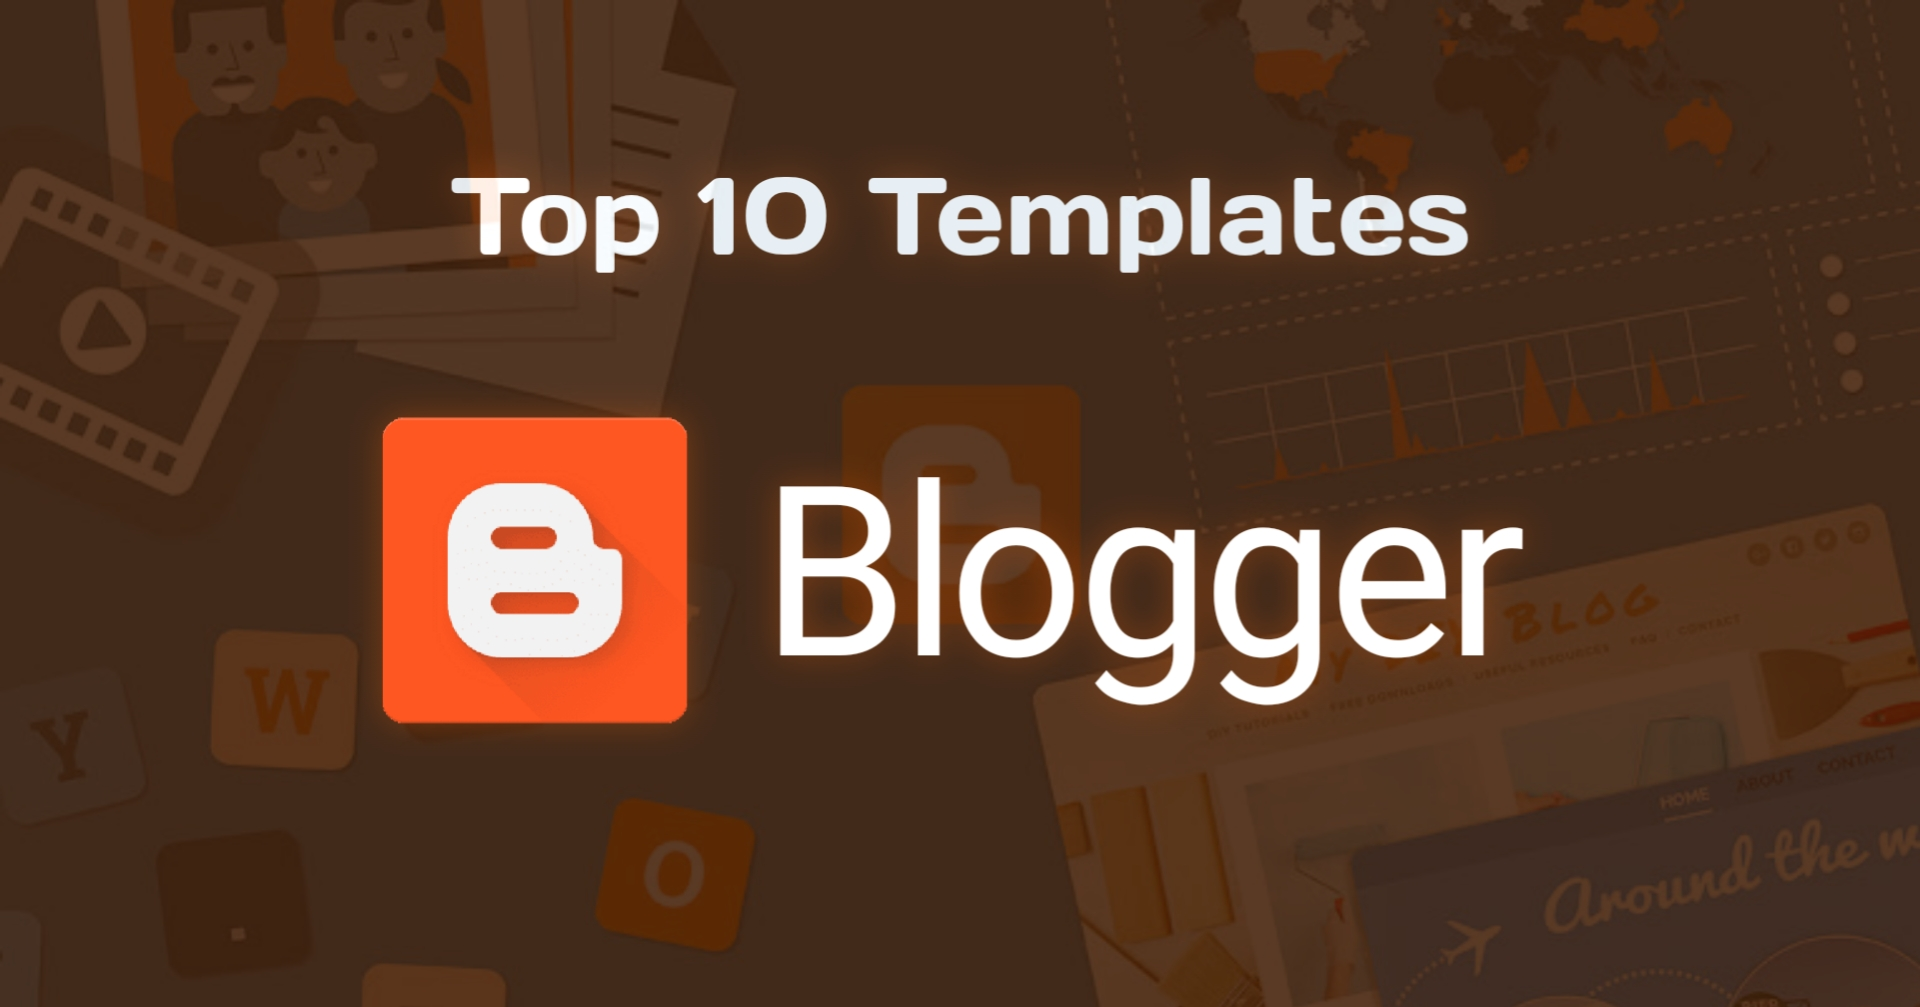 ITop 10 Best Blogger Templates